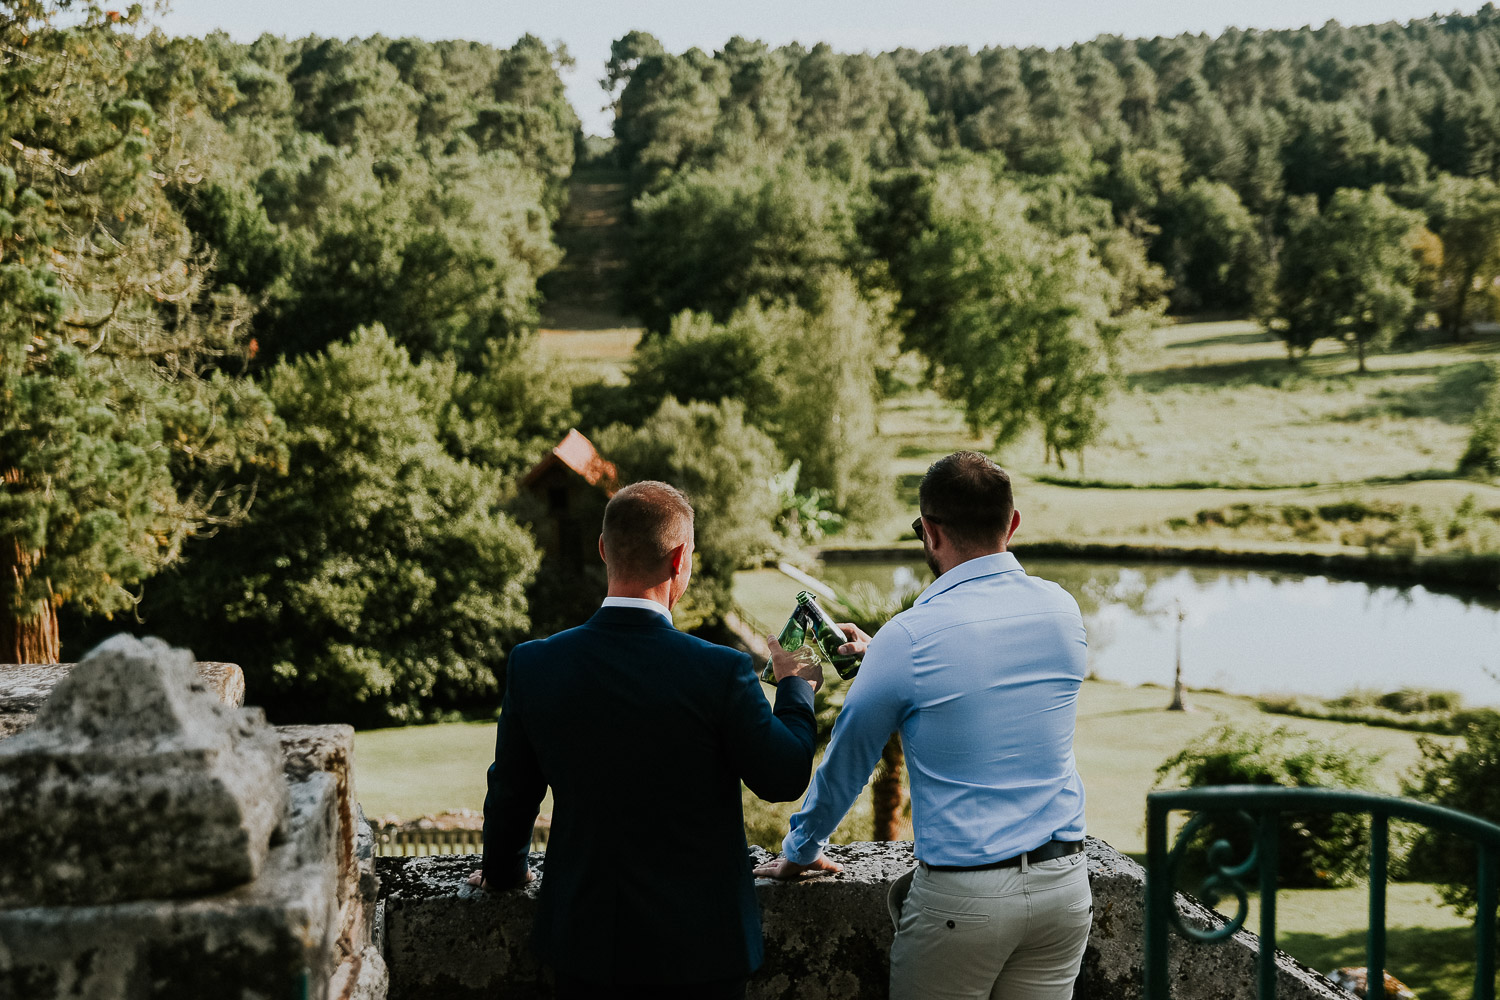 chateau_de_lisse_gers_gascony_south_west_france_family_wedding_katy_webb_photography_UK72